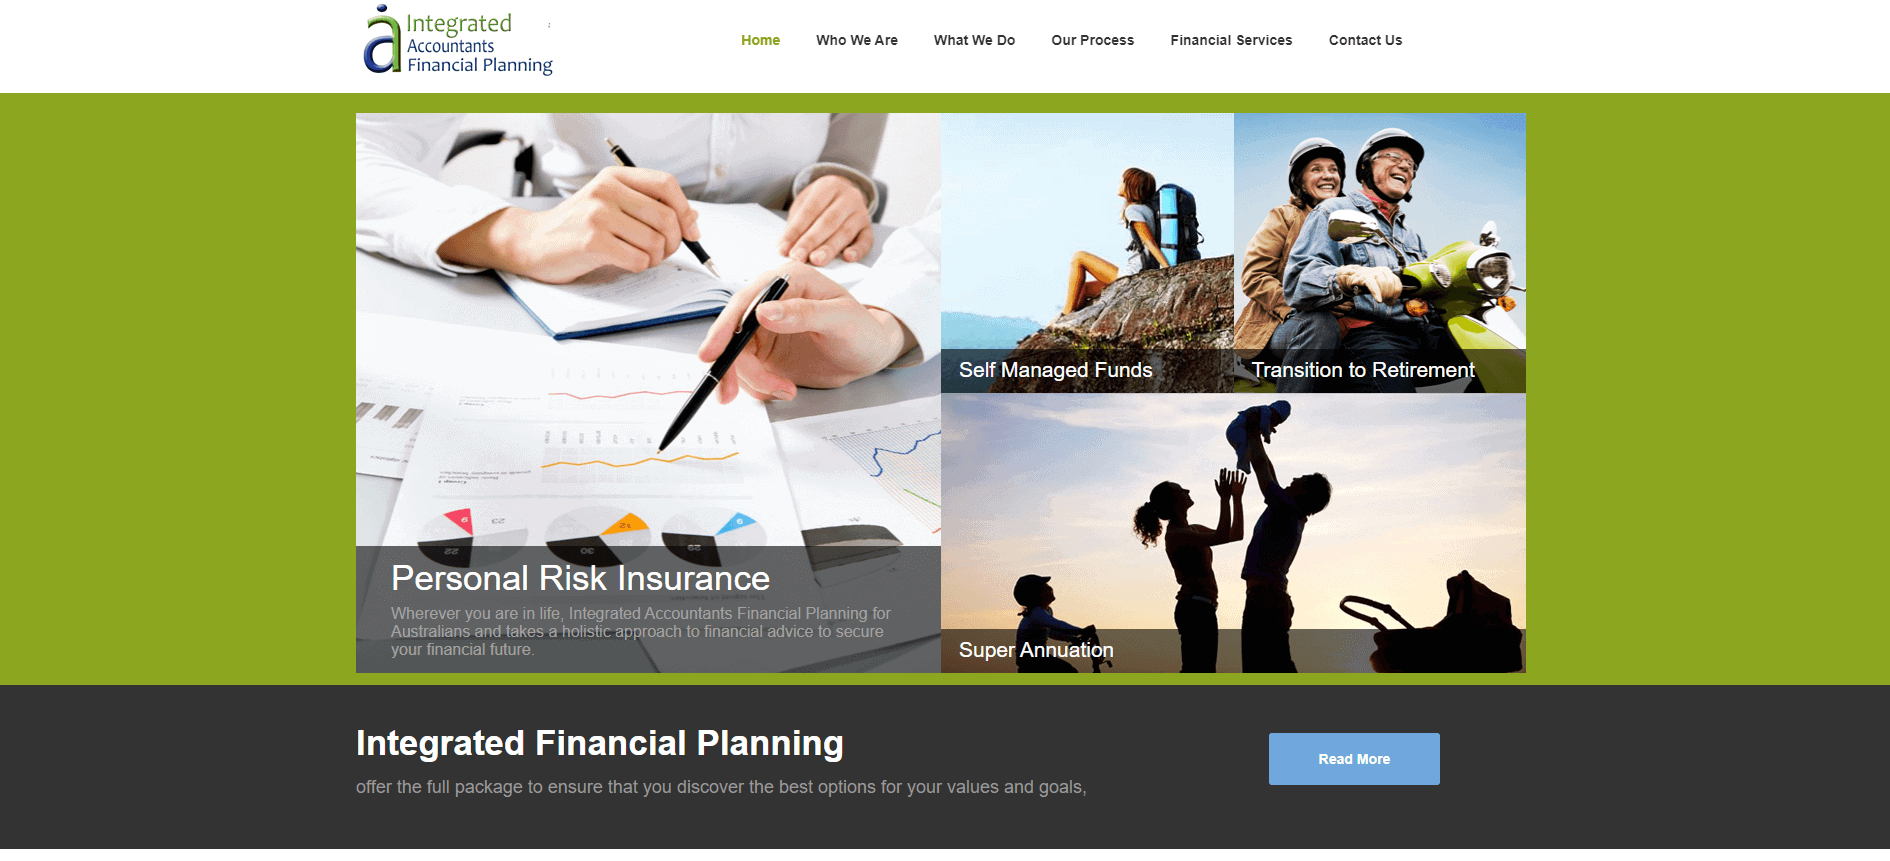 integrated accountants financial plannning